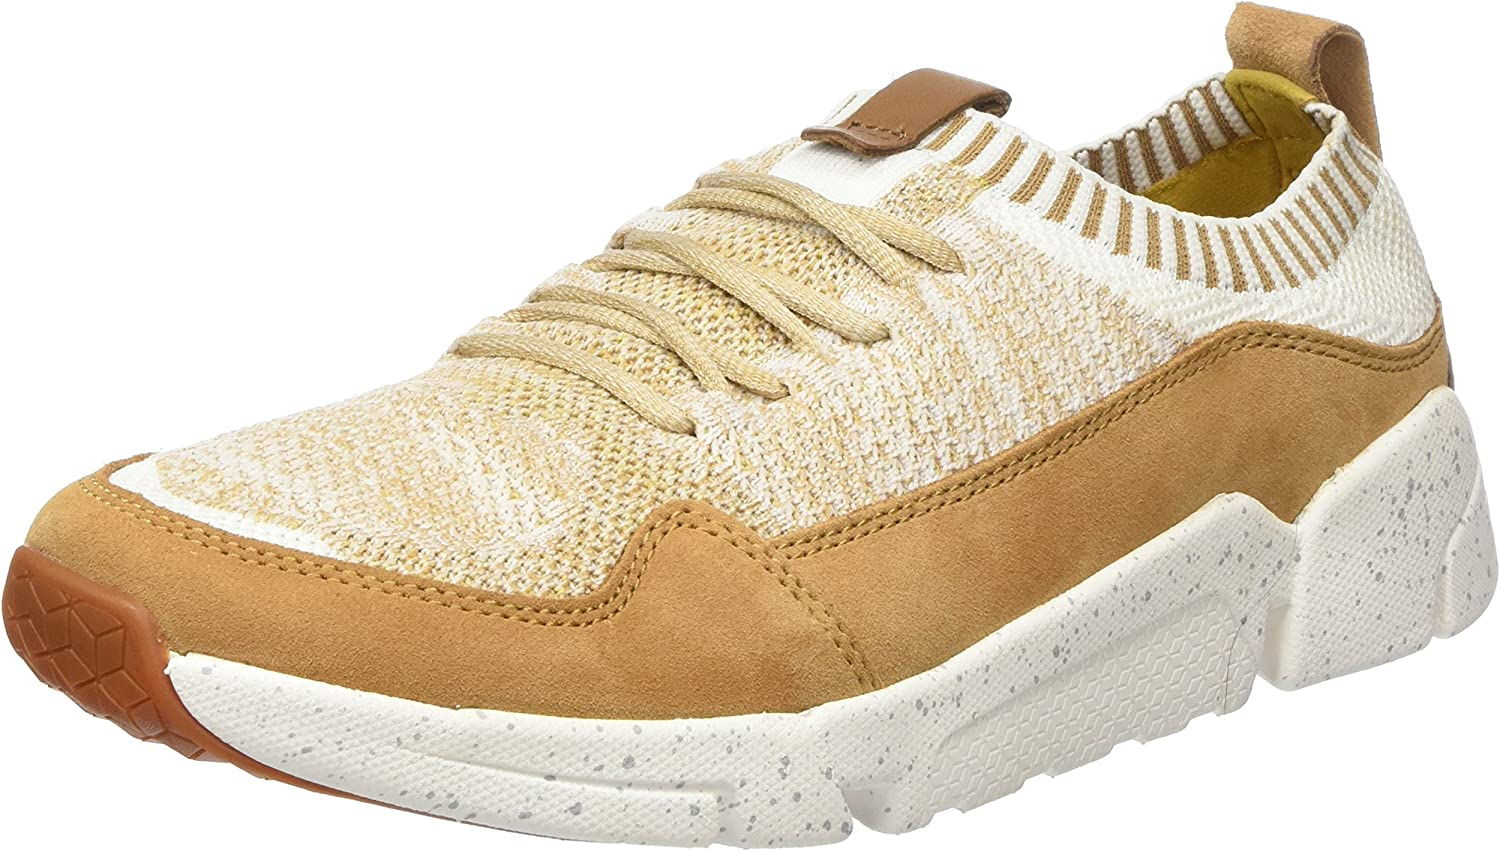 Clarks Men's Triactive Knit Trainers